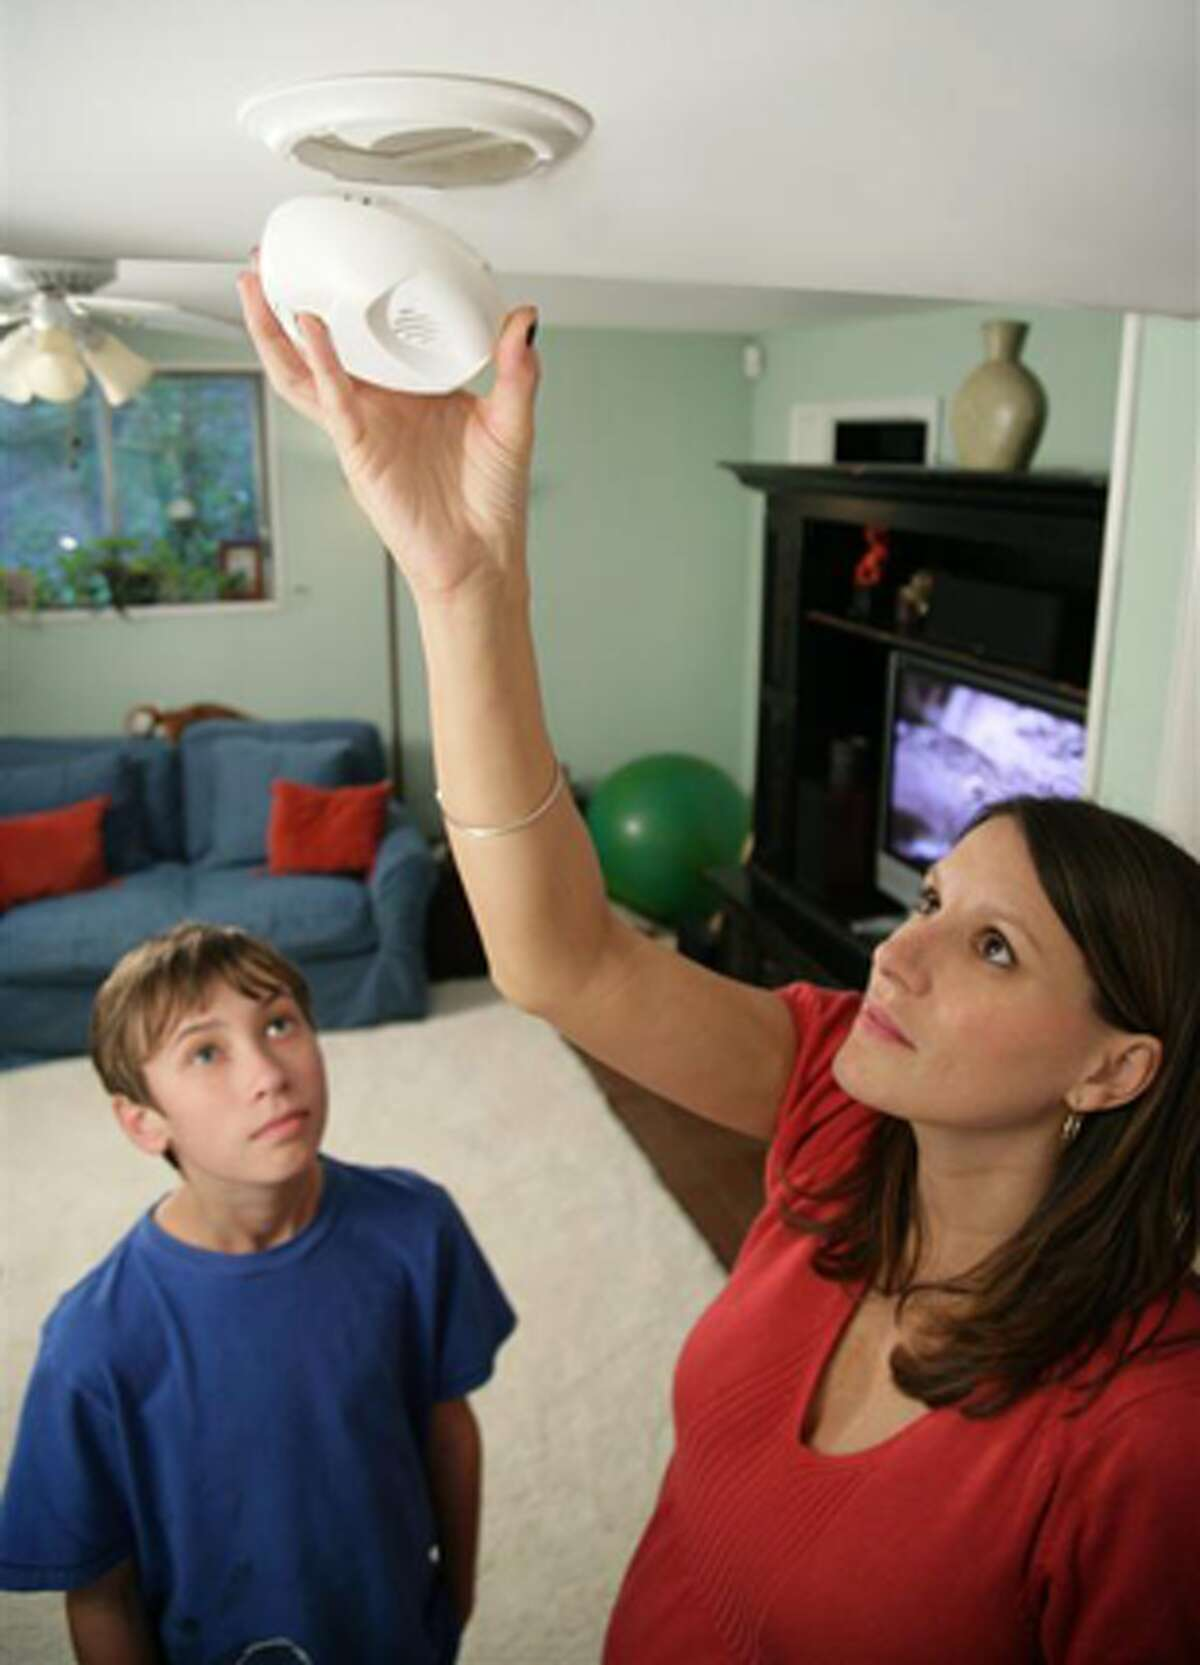 Installing smoke alarms in multiple locations inside a home is key to saving lives.